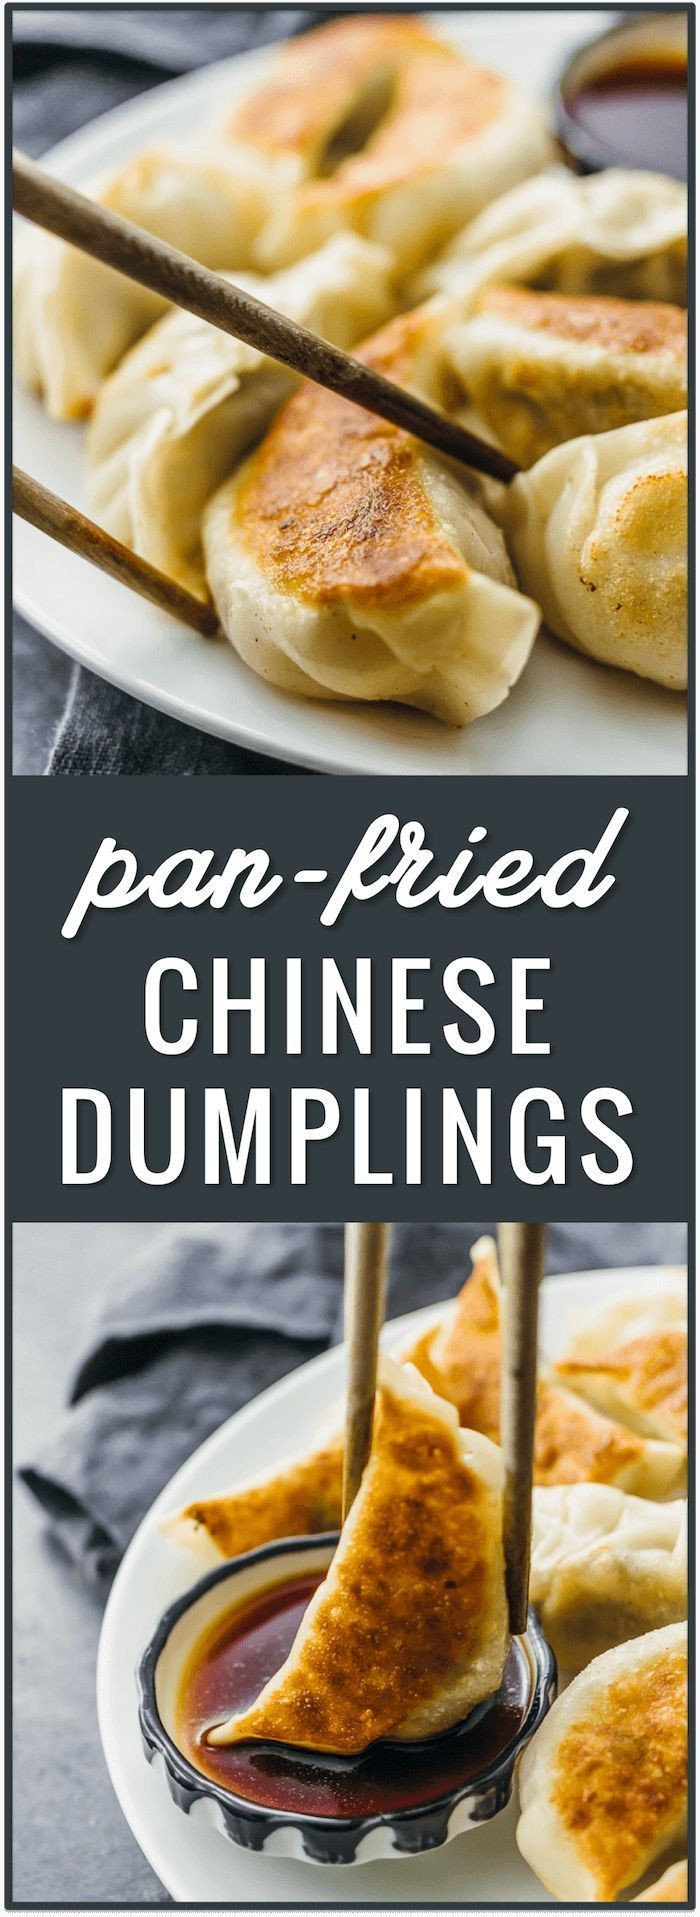 Pan-fried Chinese dumplings recipe, potstickers, pork dumplings, easy dumplings, how to cook dumplings from scratch, beef dumplings, fried, frozen, boil, filling ideas, authentic, homemade, chicken, for soup, asian via @savory_tooth #chinesefood